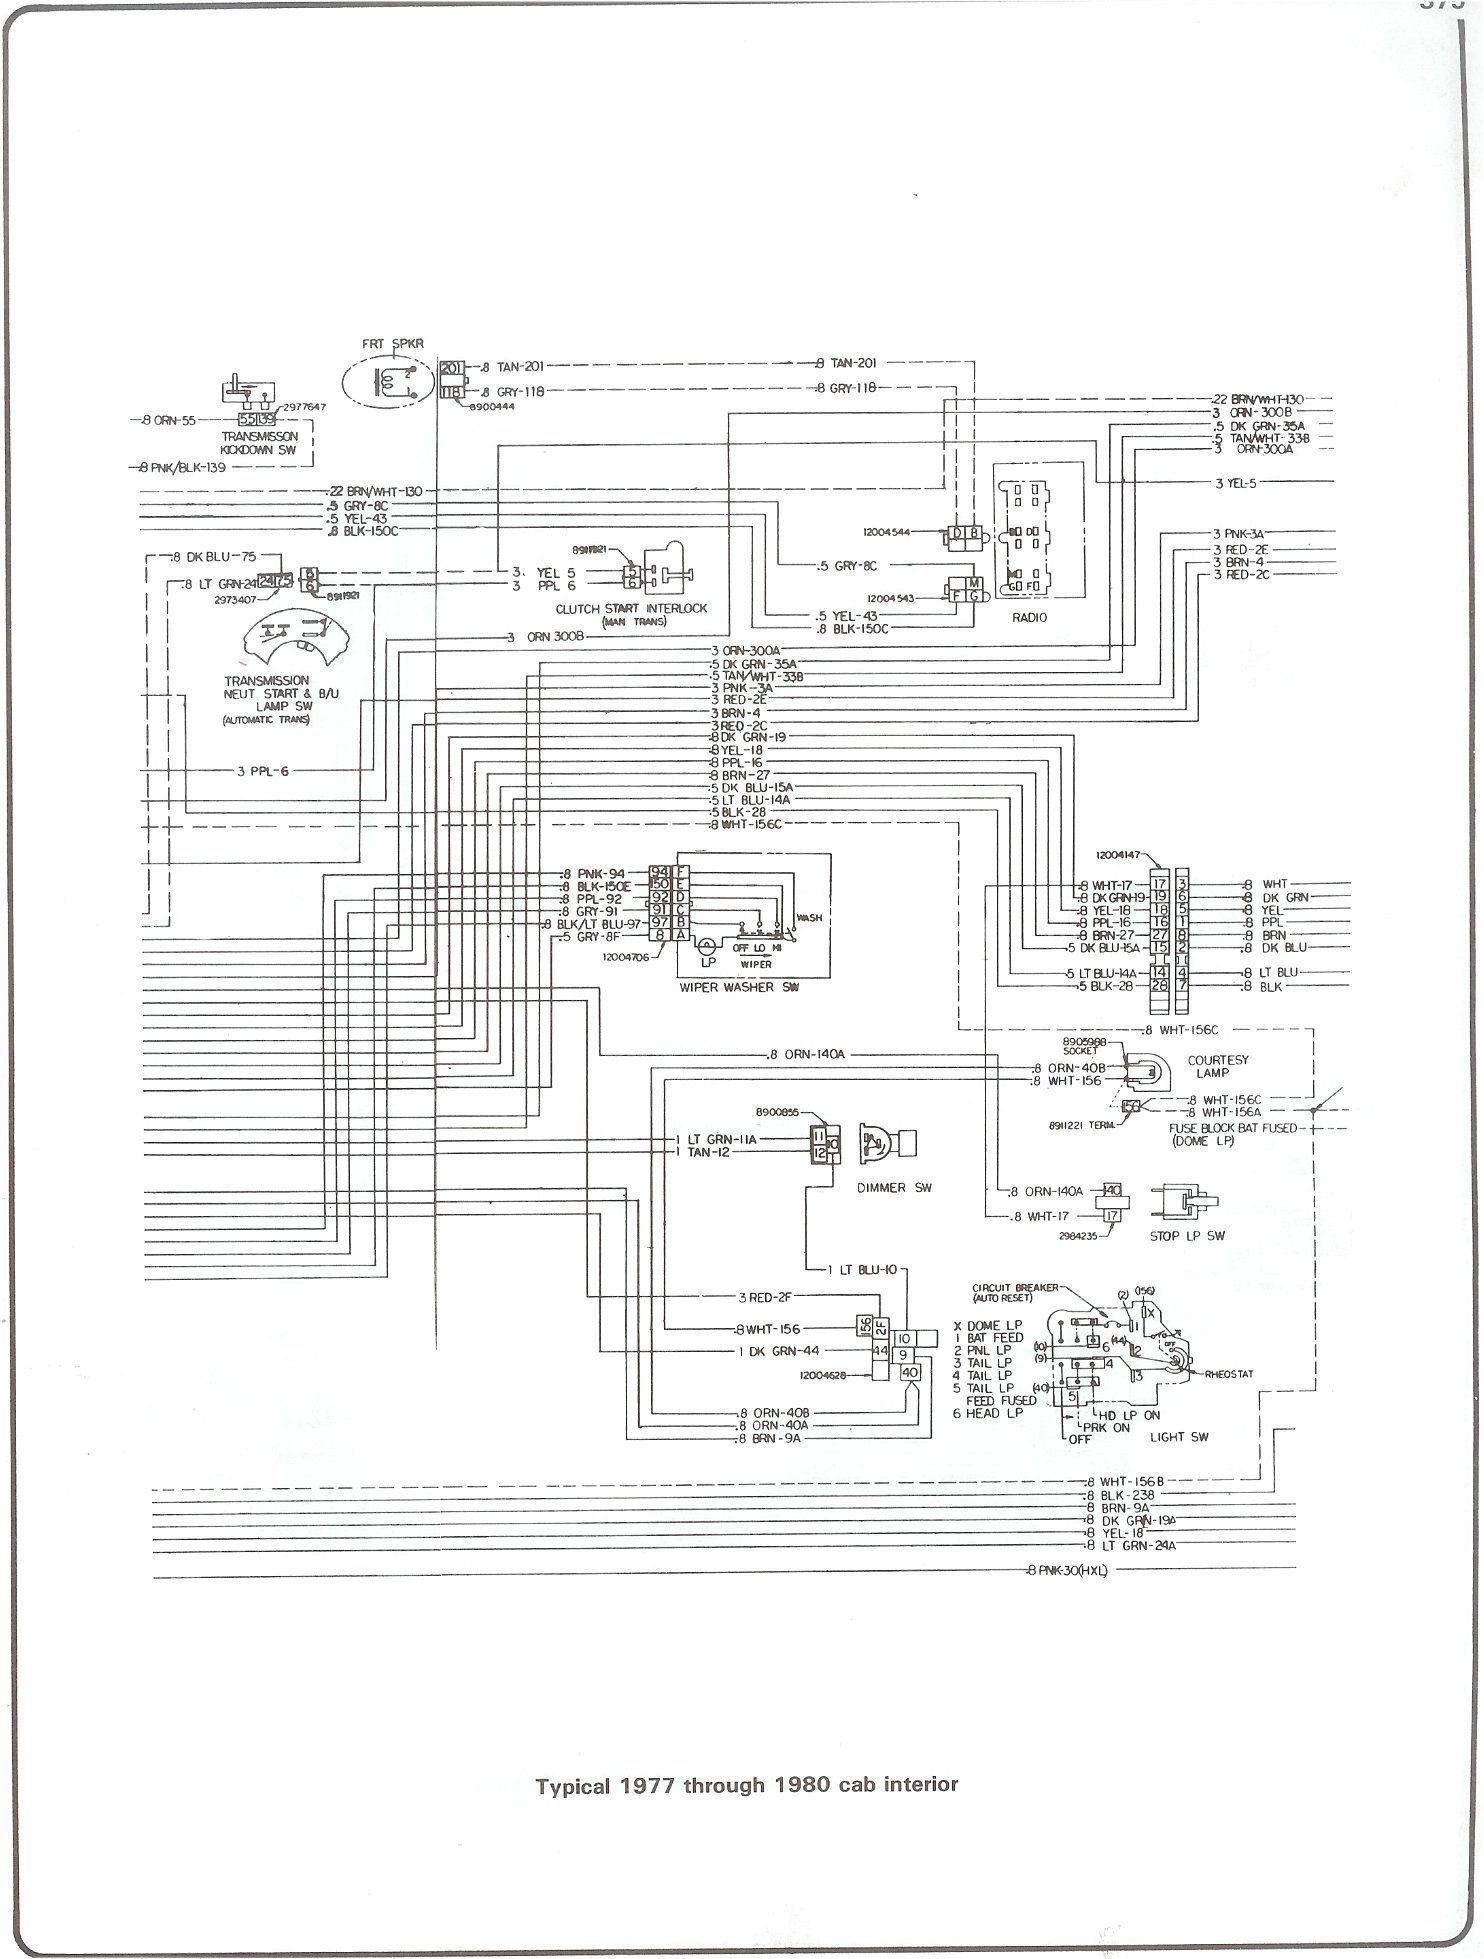 77 80_cab_inter complete 73 87 wiring diagrams 1987 chevy wiring diagram at bayanpartner.co